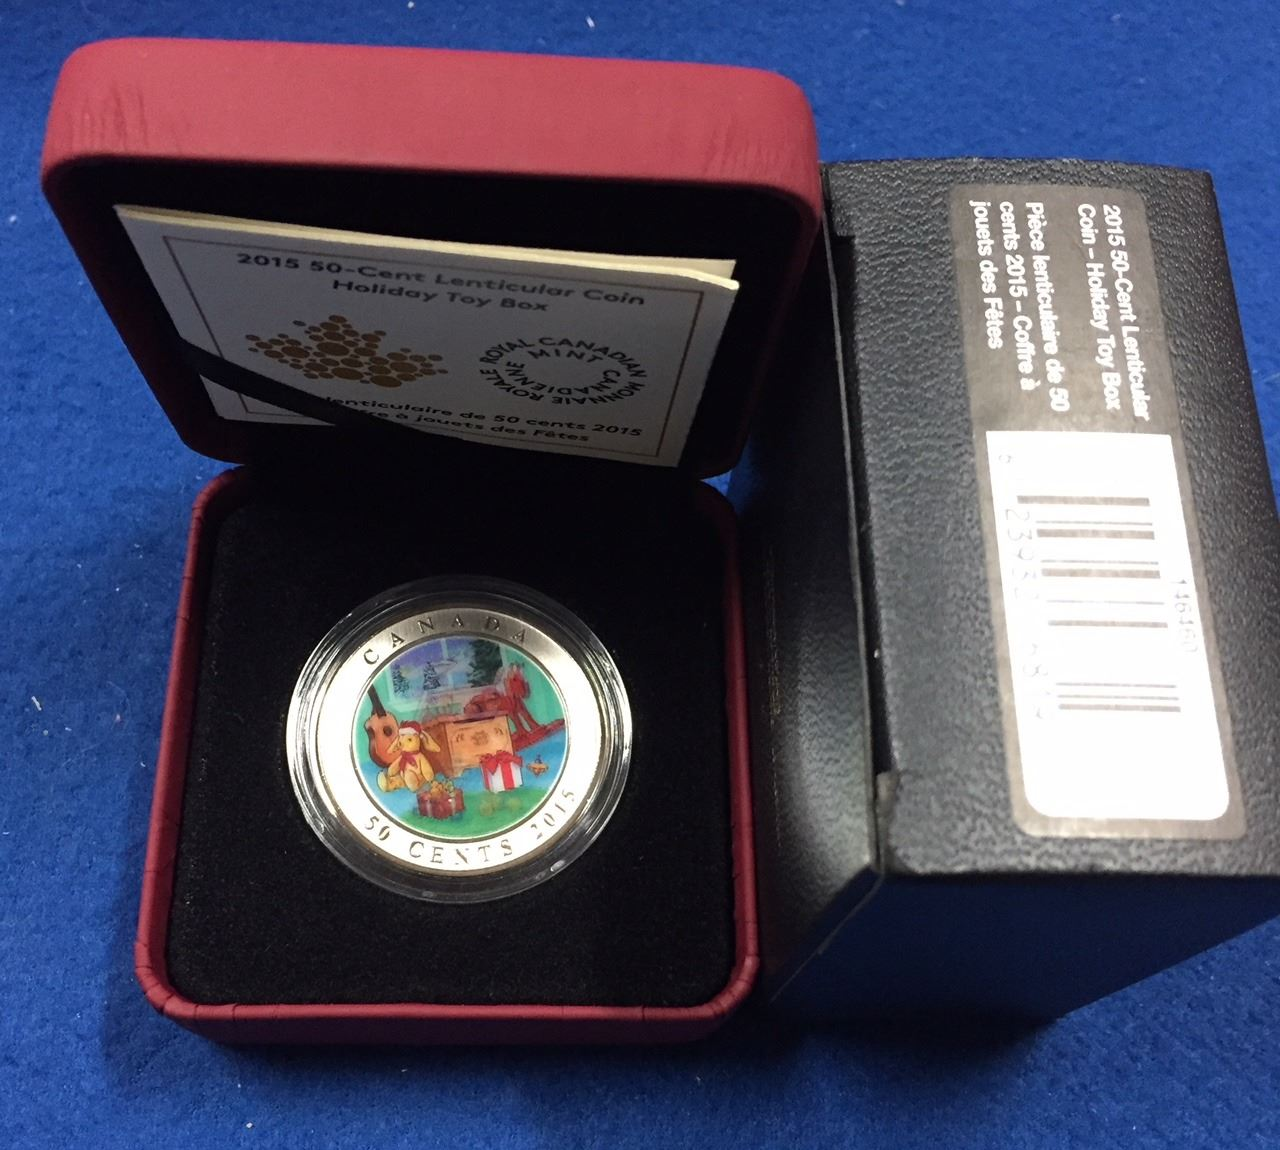 Canada 2015 50 Cent Lenticular Holiday Toy Box Coin